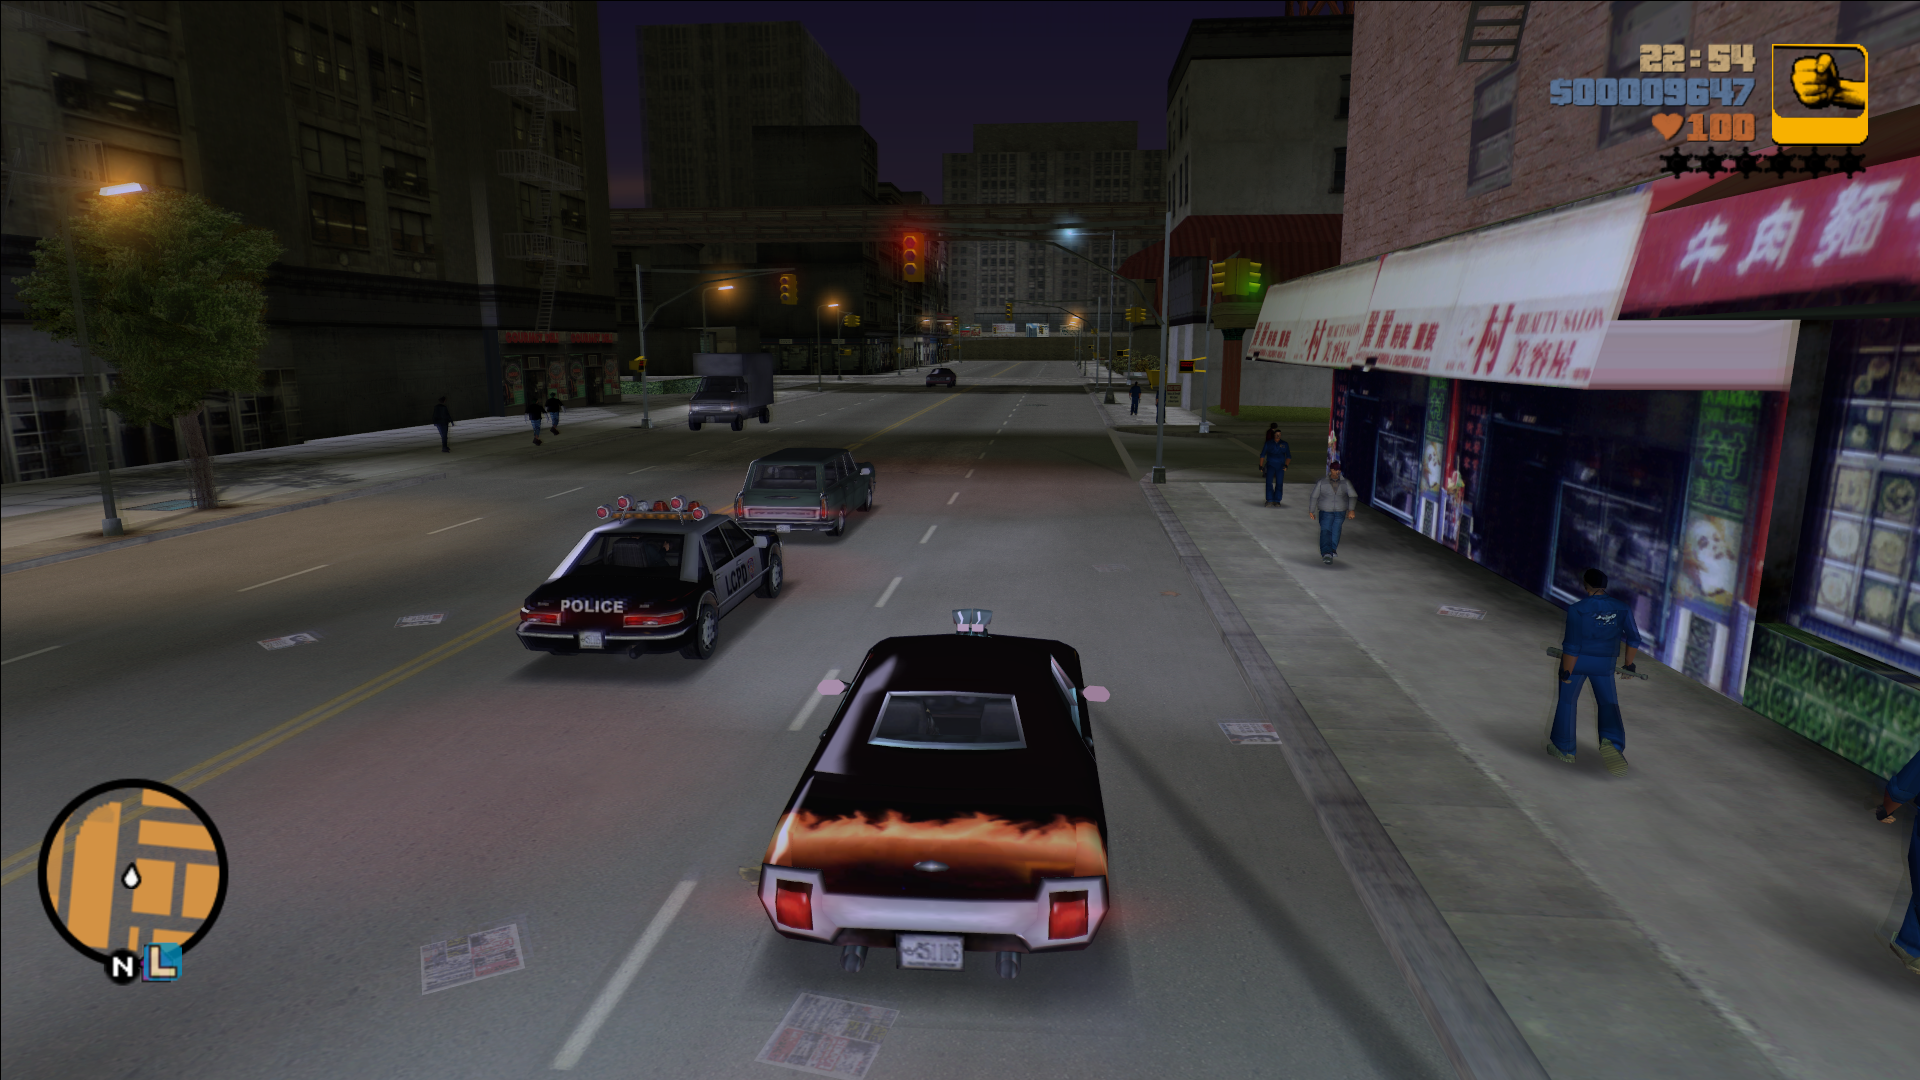 GTA3 did not age very well | NeoGAF